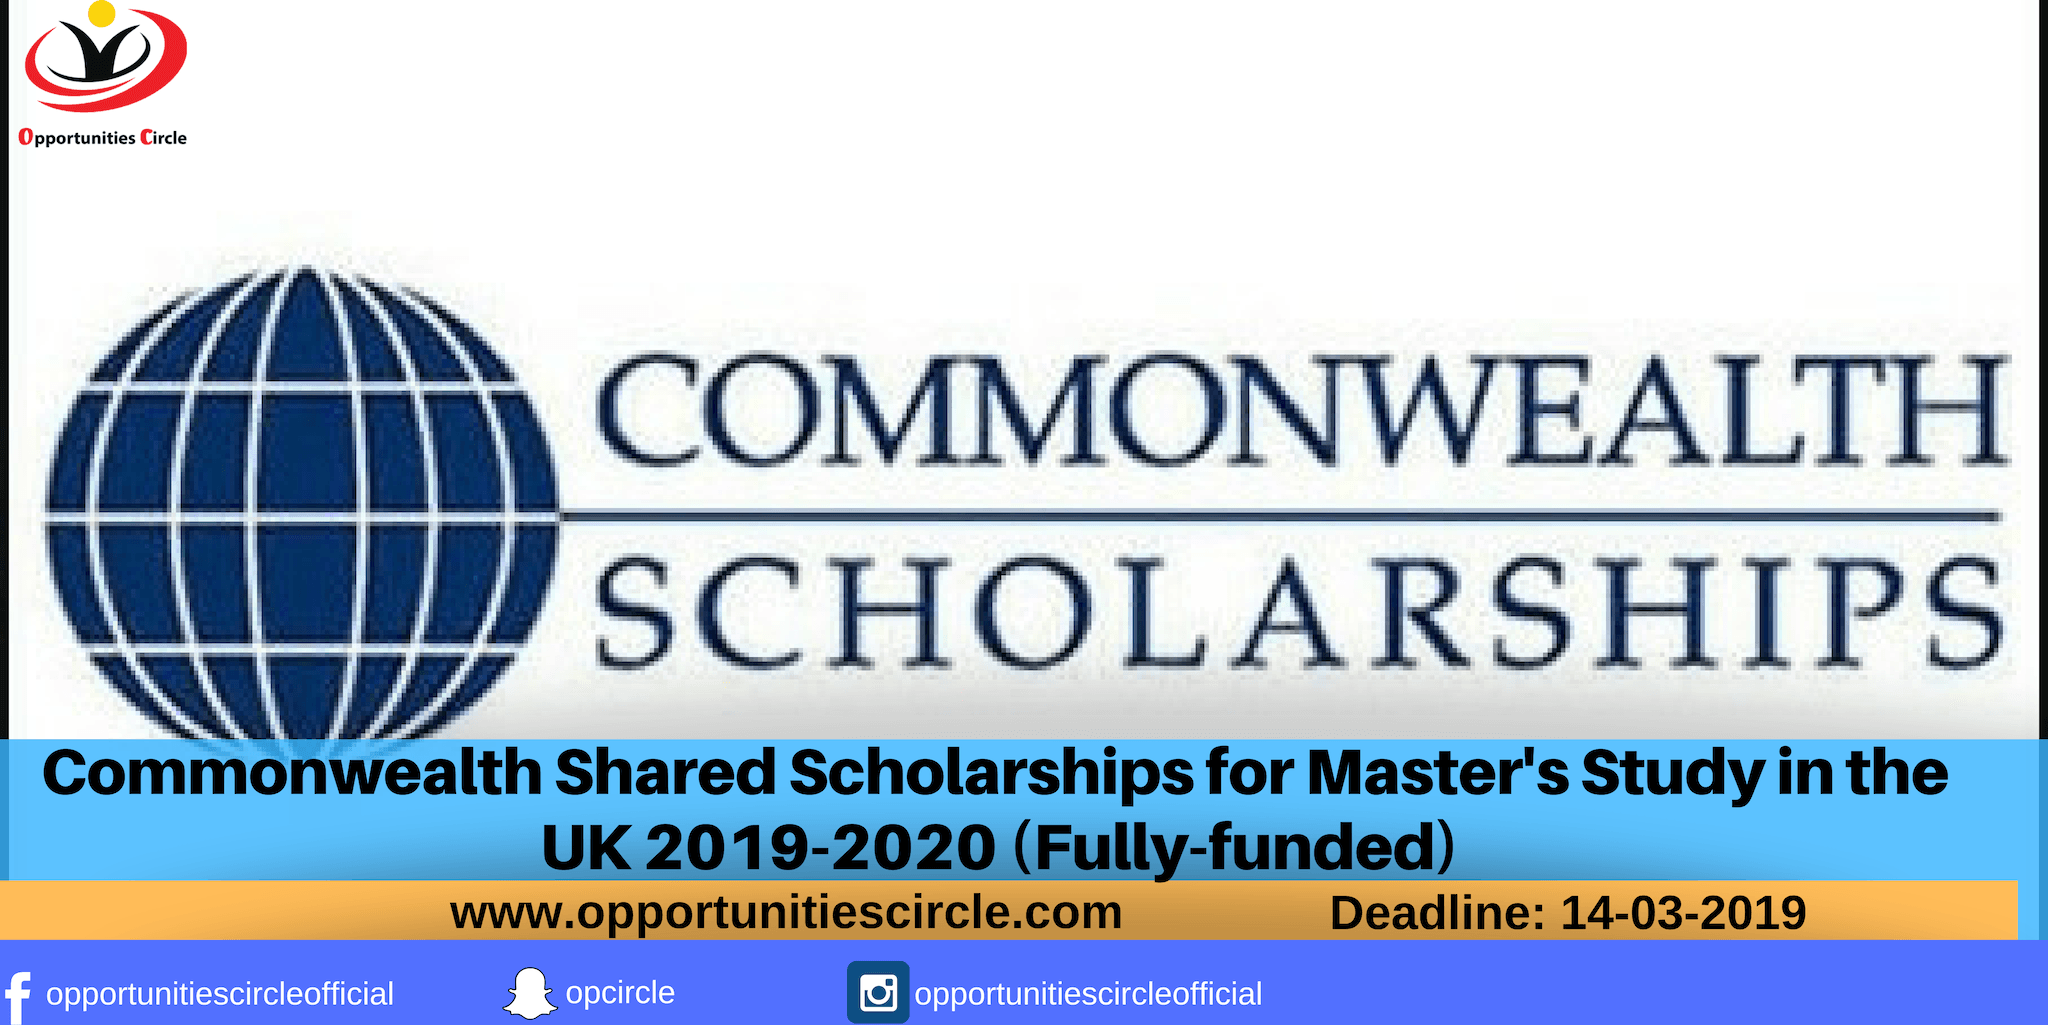 Commonwealth Shared Scholarships for Master's Study in the